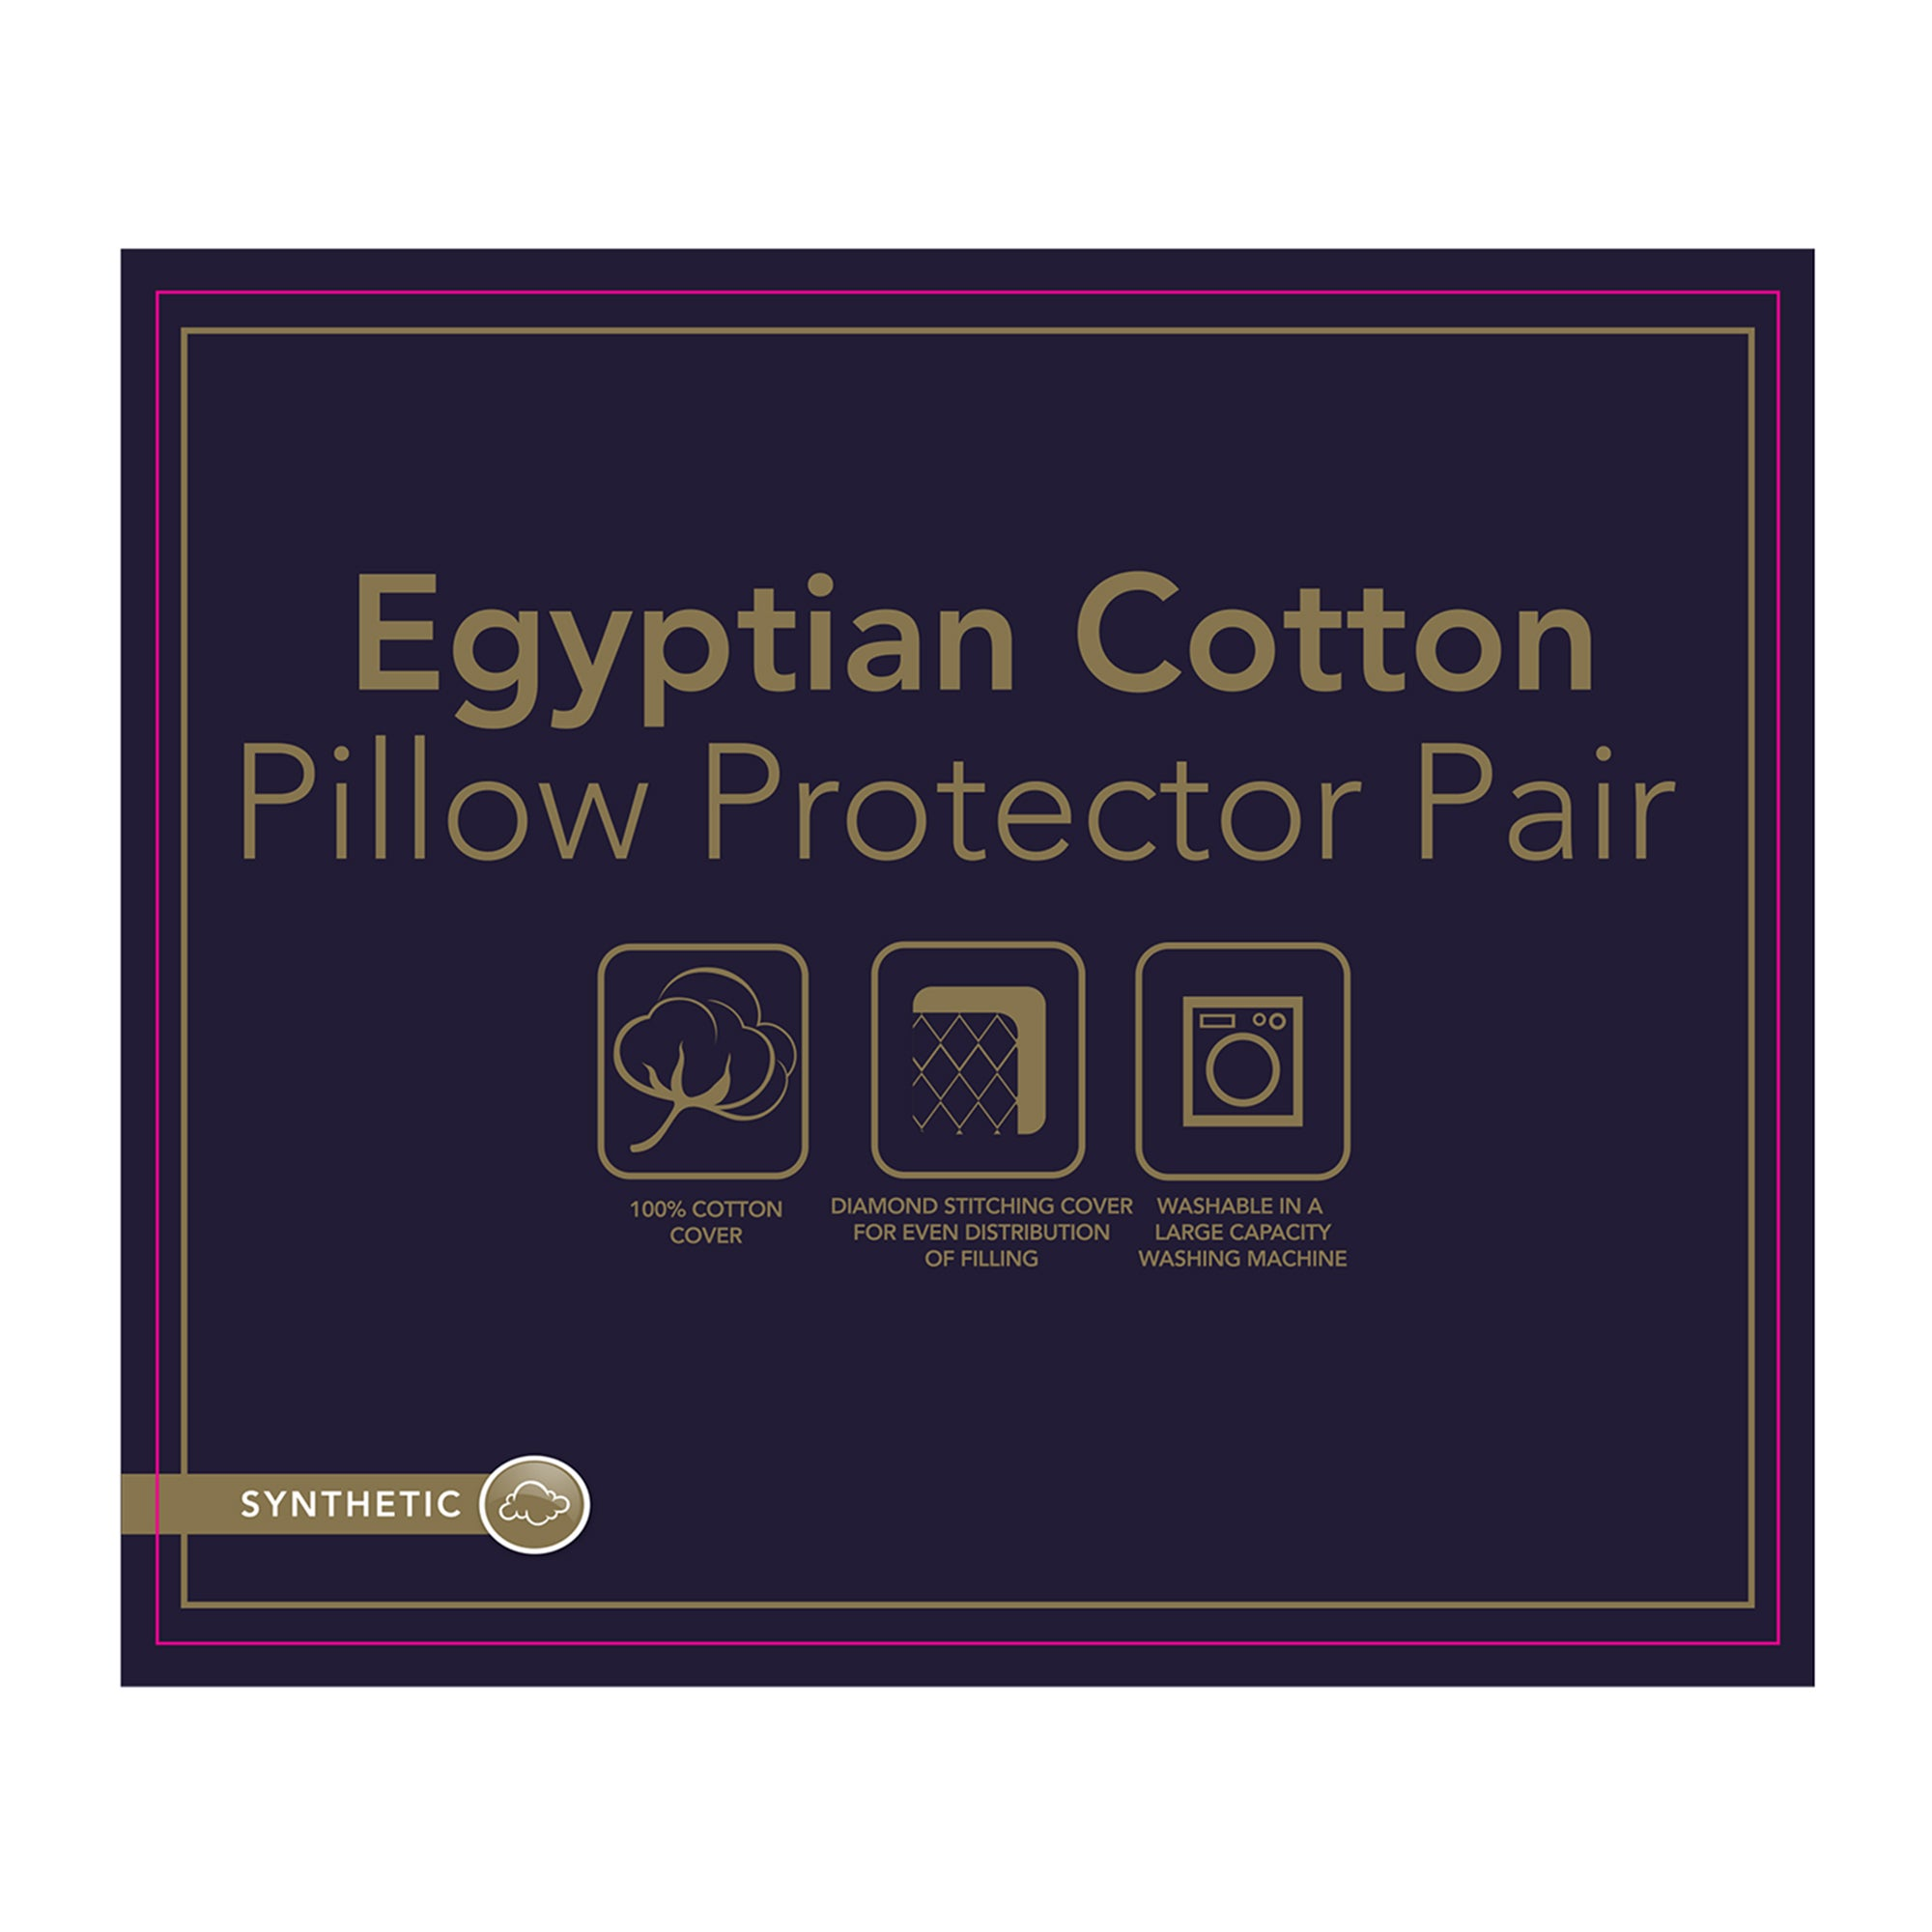 Image of Egyptian Cotton Pillow Protector Pair White